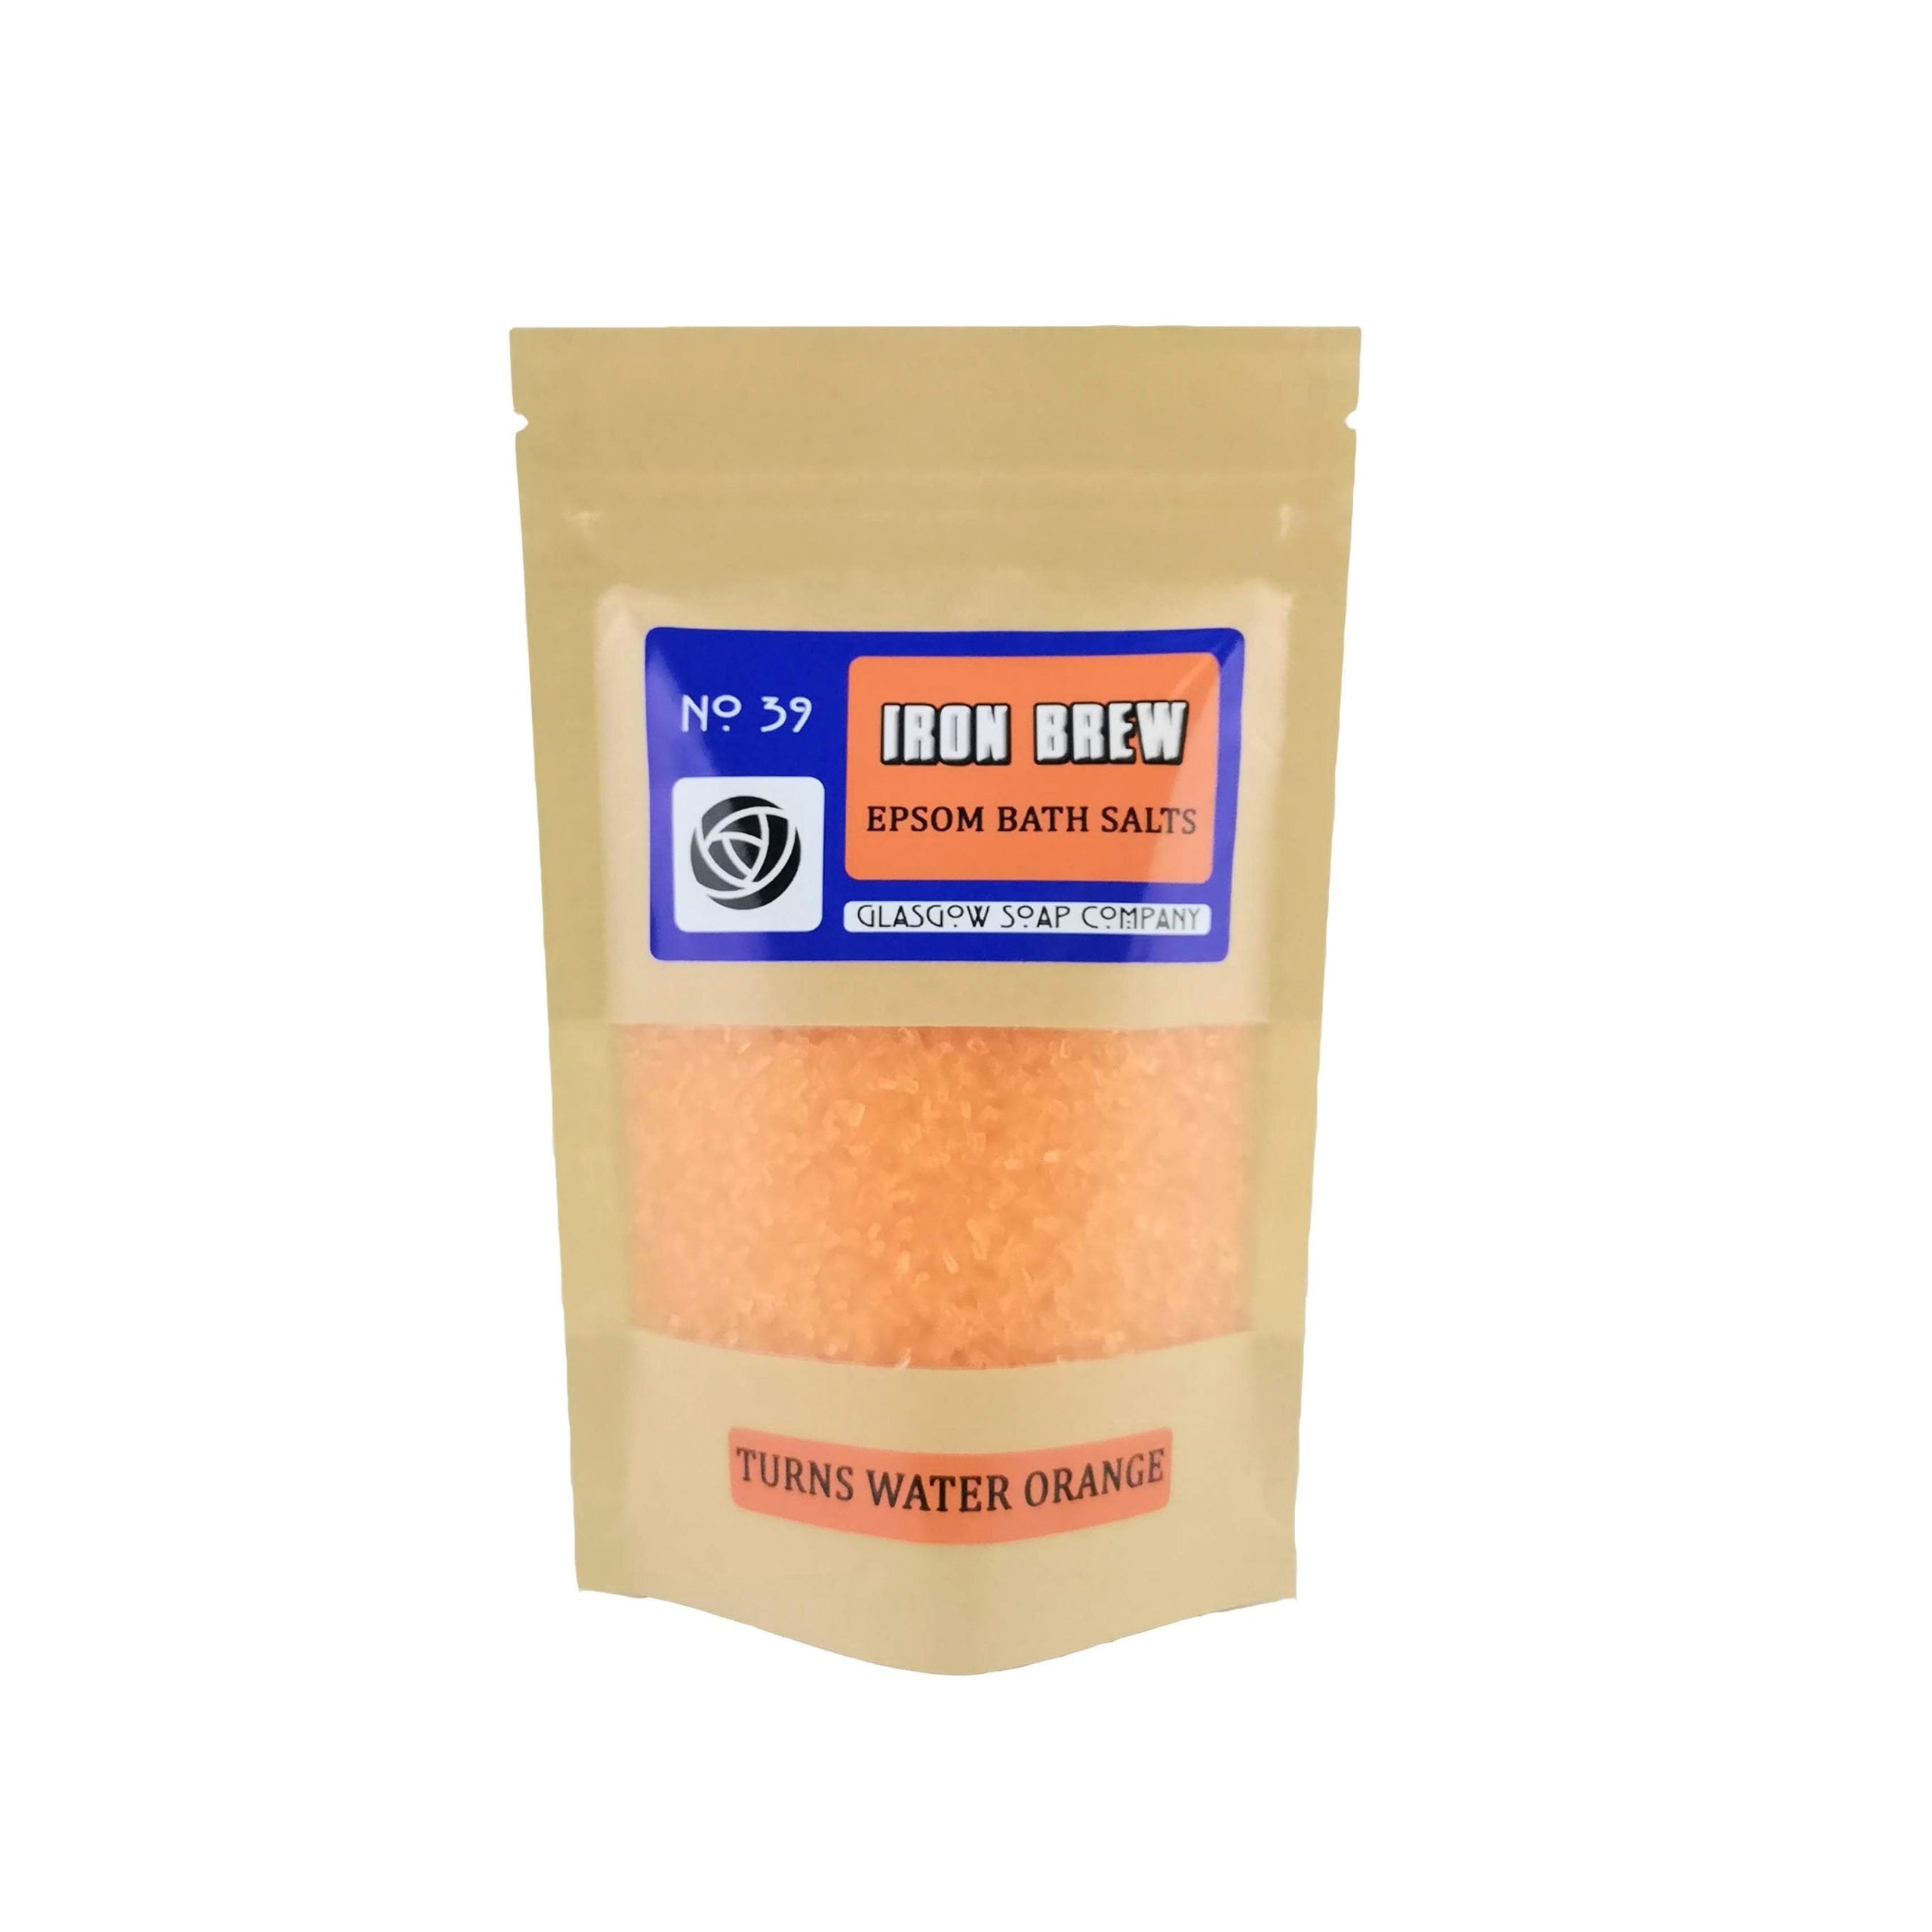 Irn Brew Bath Salts